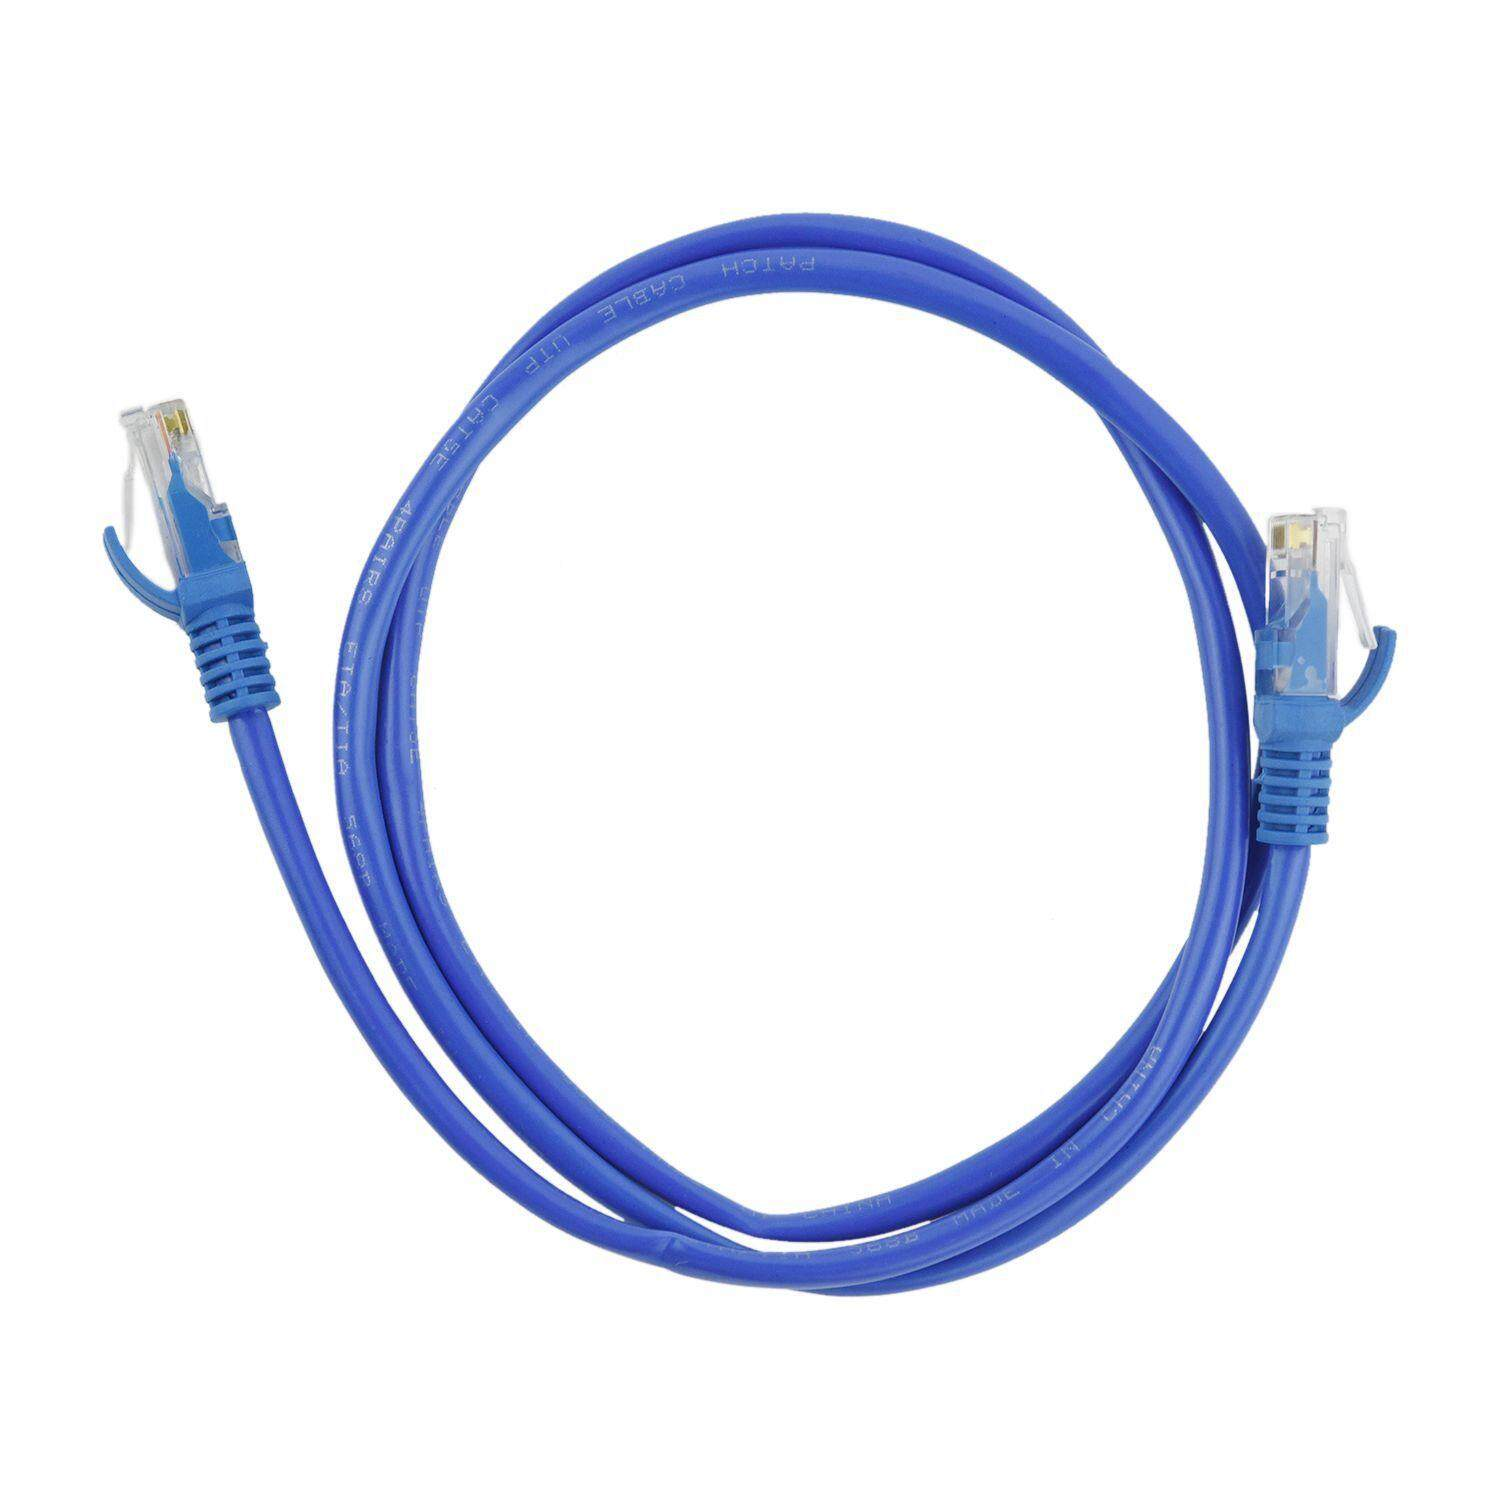 Computer Laptop Ethernet Cables For The Best Prices In Malaysia Male Cable Cat 5 Wiring Diagram Cat5 Cat5e Network Lan Blue 1m